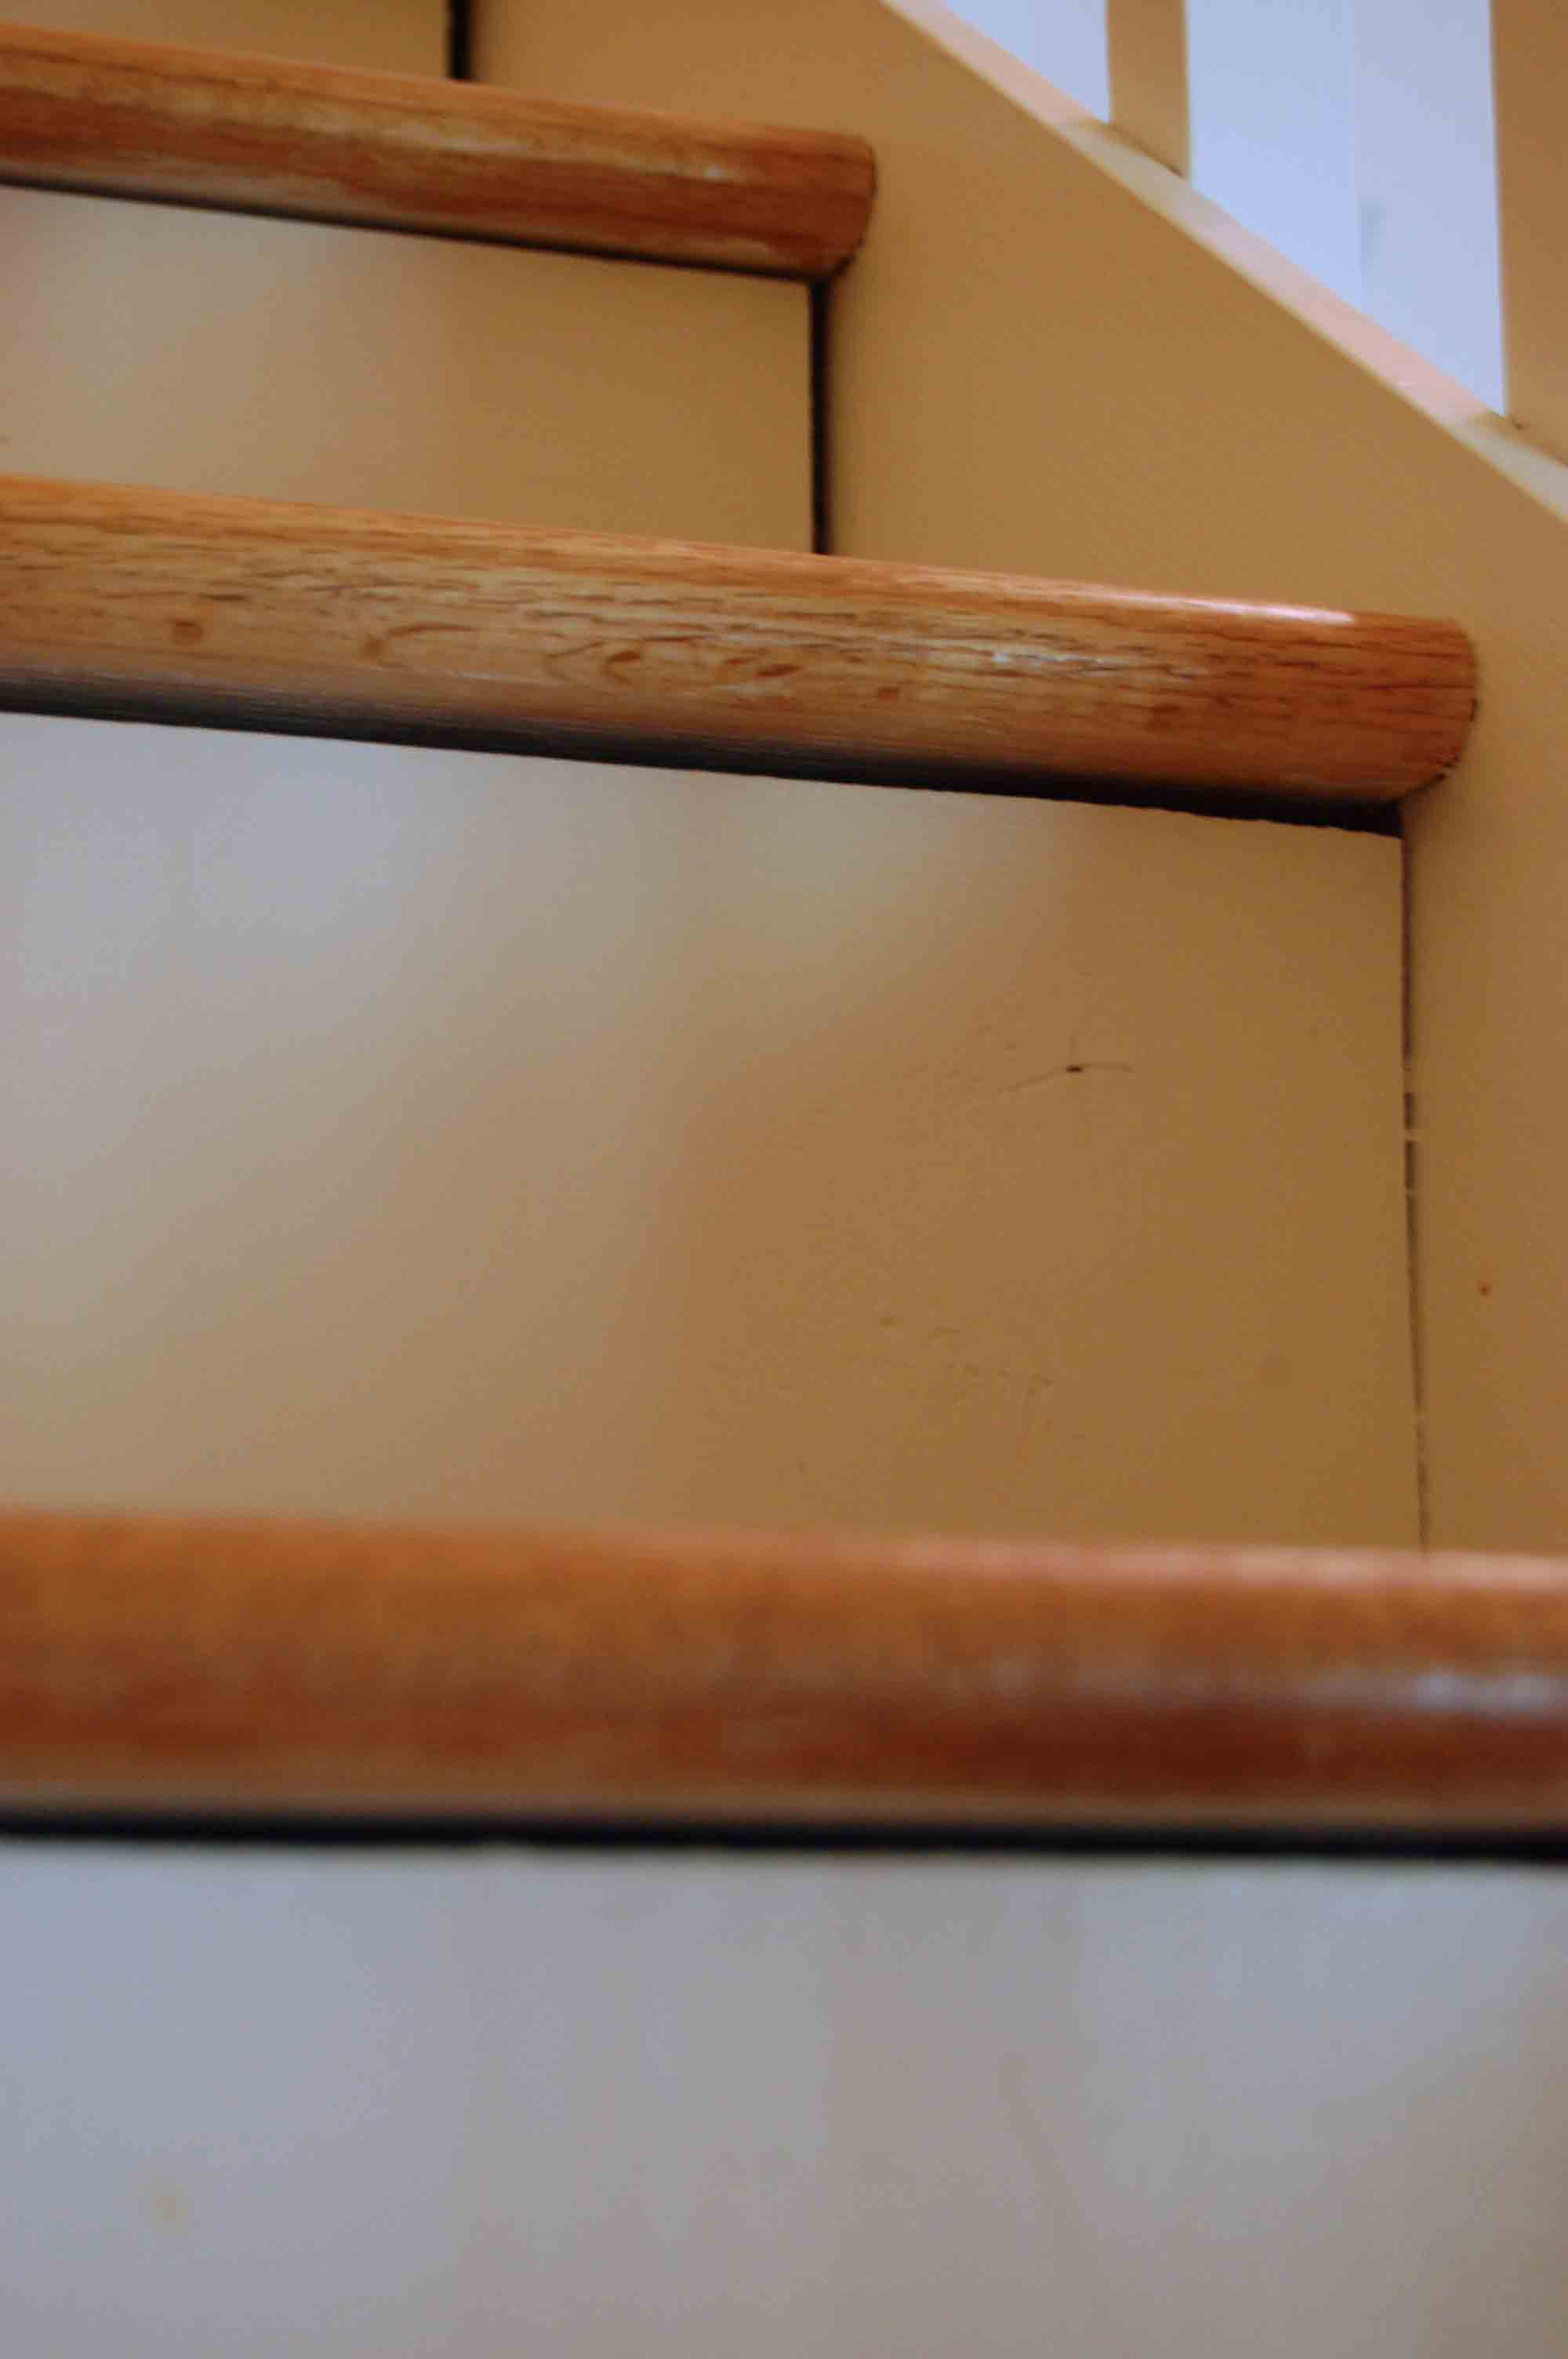 ... Fix Gaps In Stairs Stair Gap3 Diy